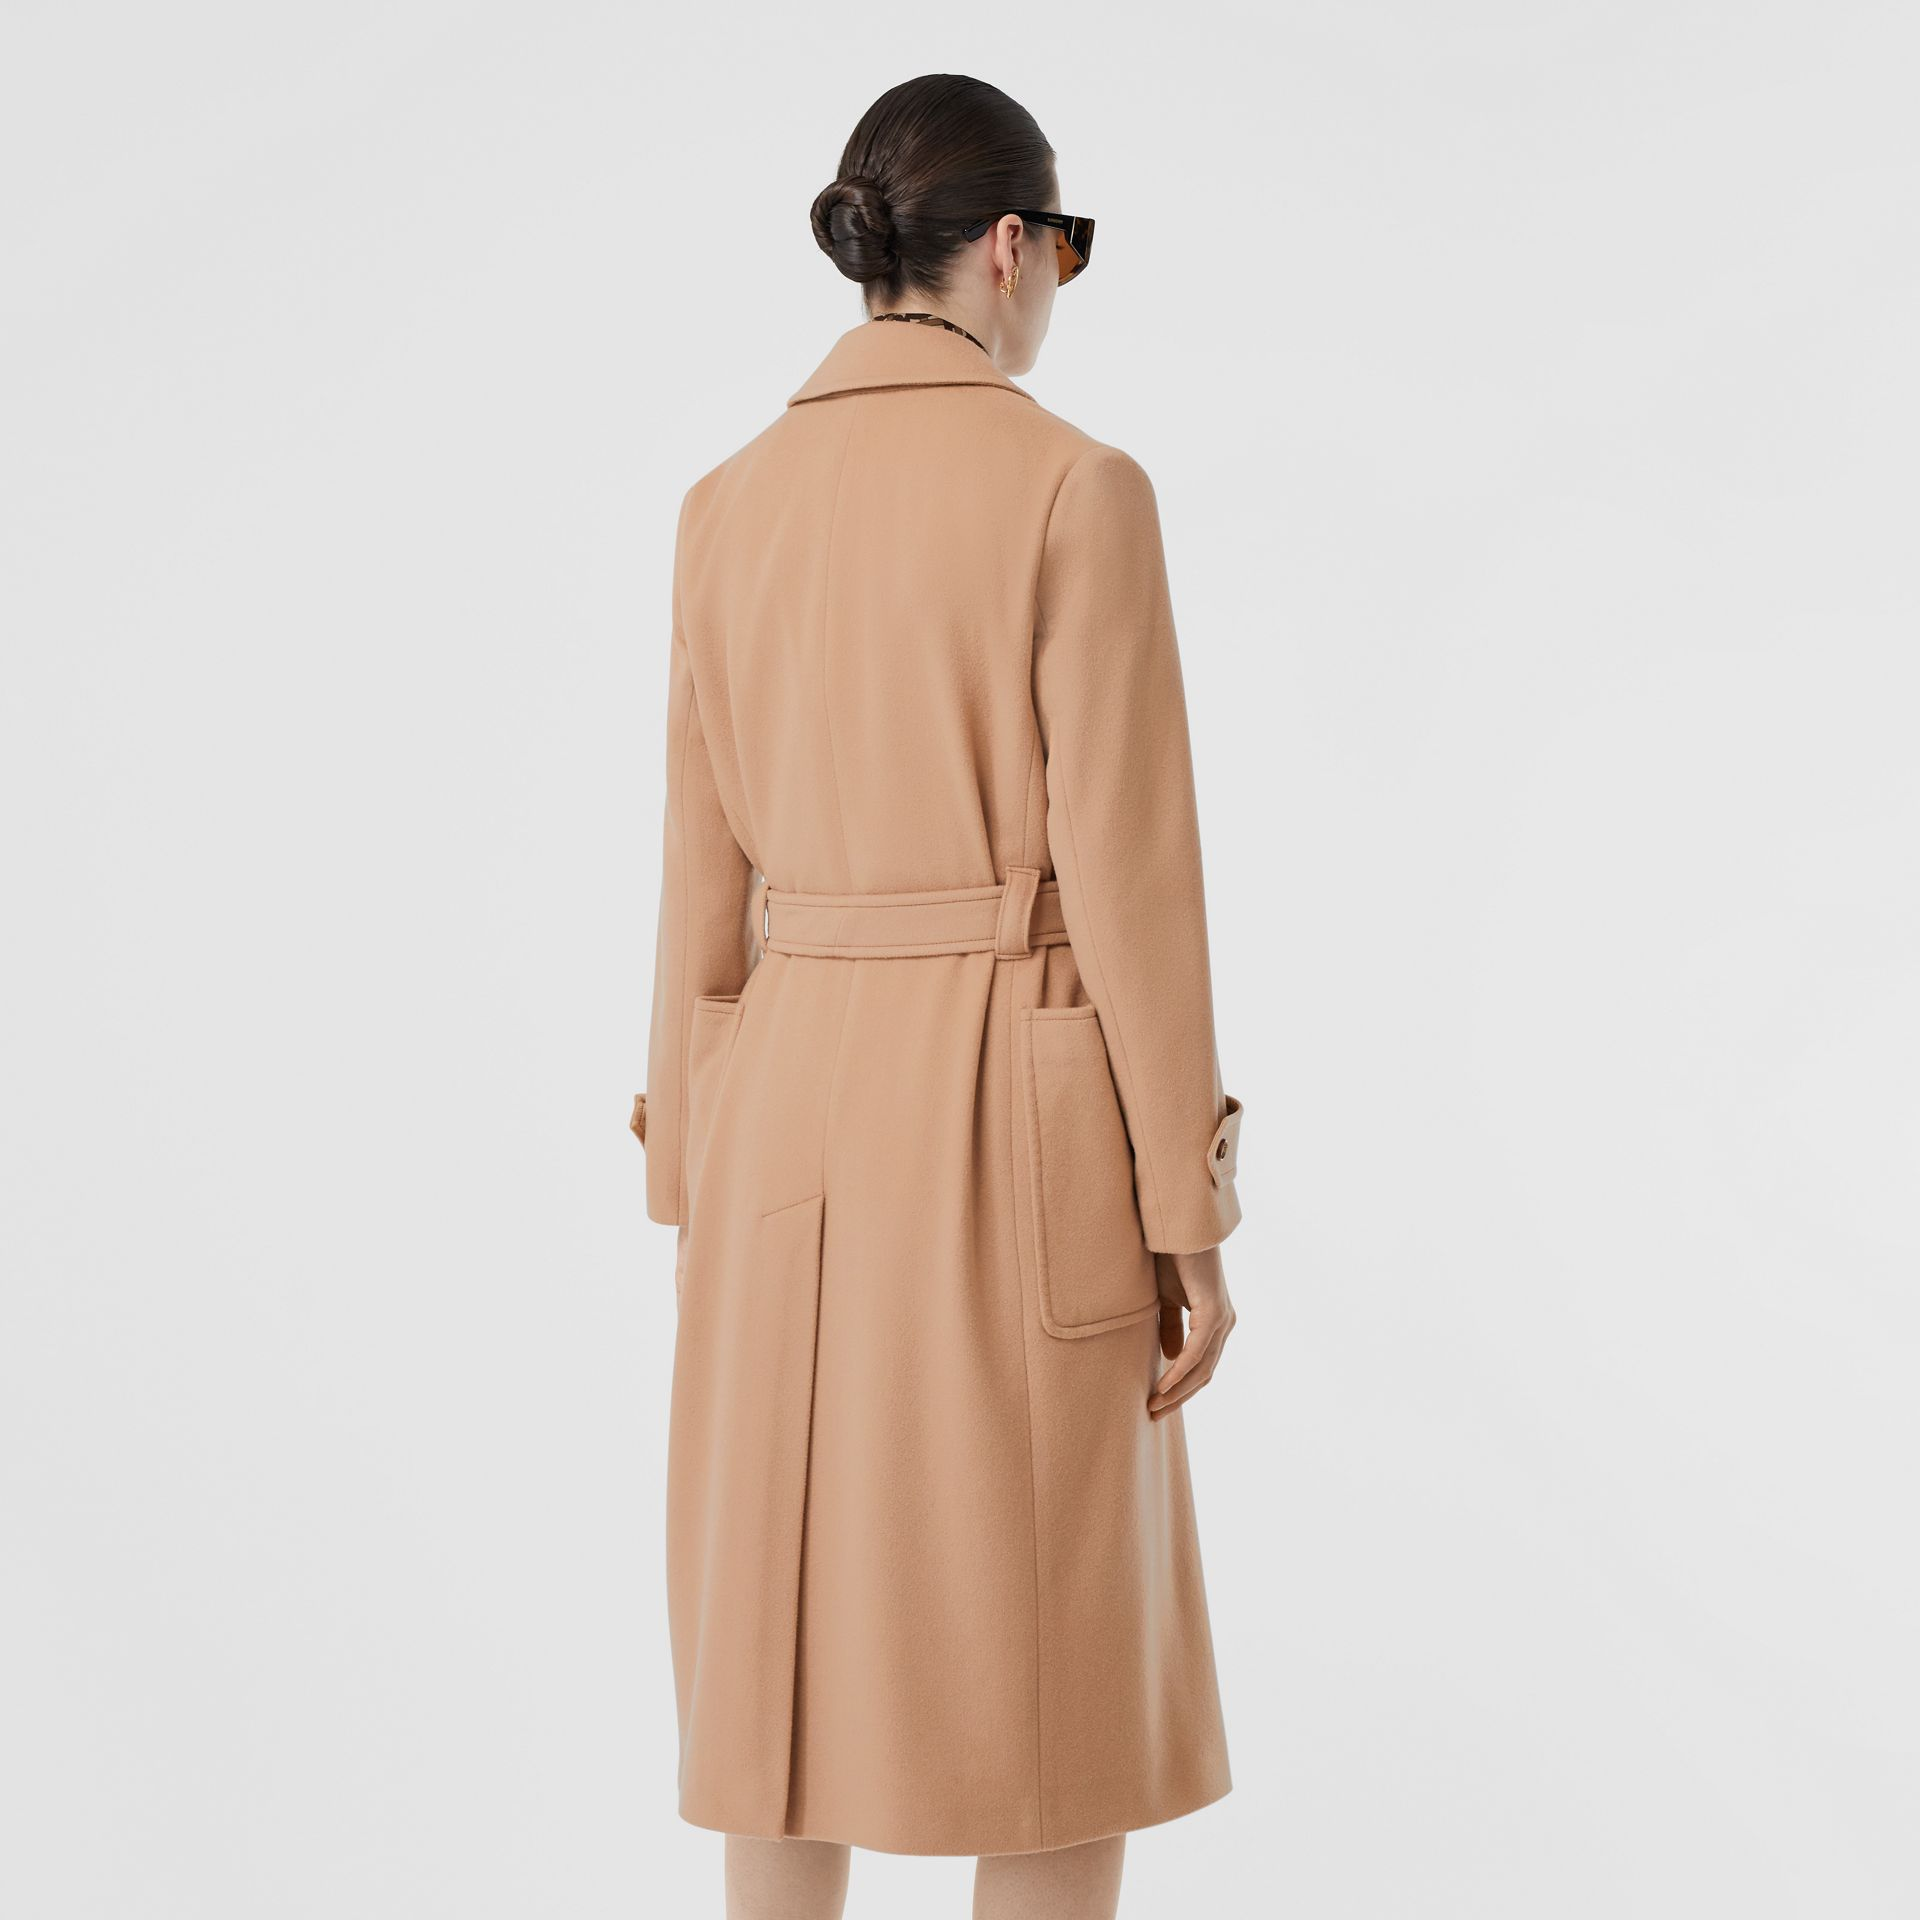 Cashmere Wrap Coat in Modern Beige - Women | Burberry - gallery image 2